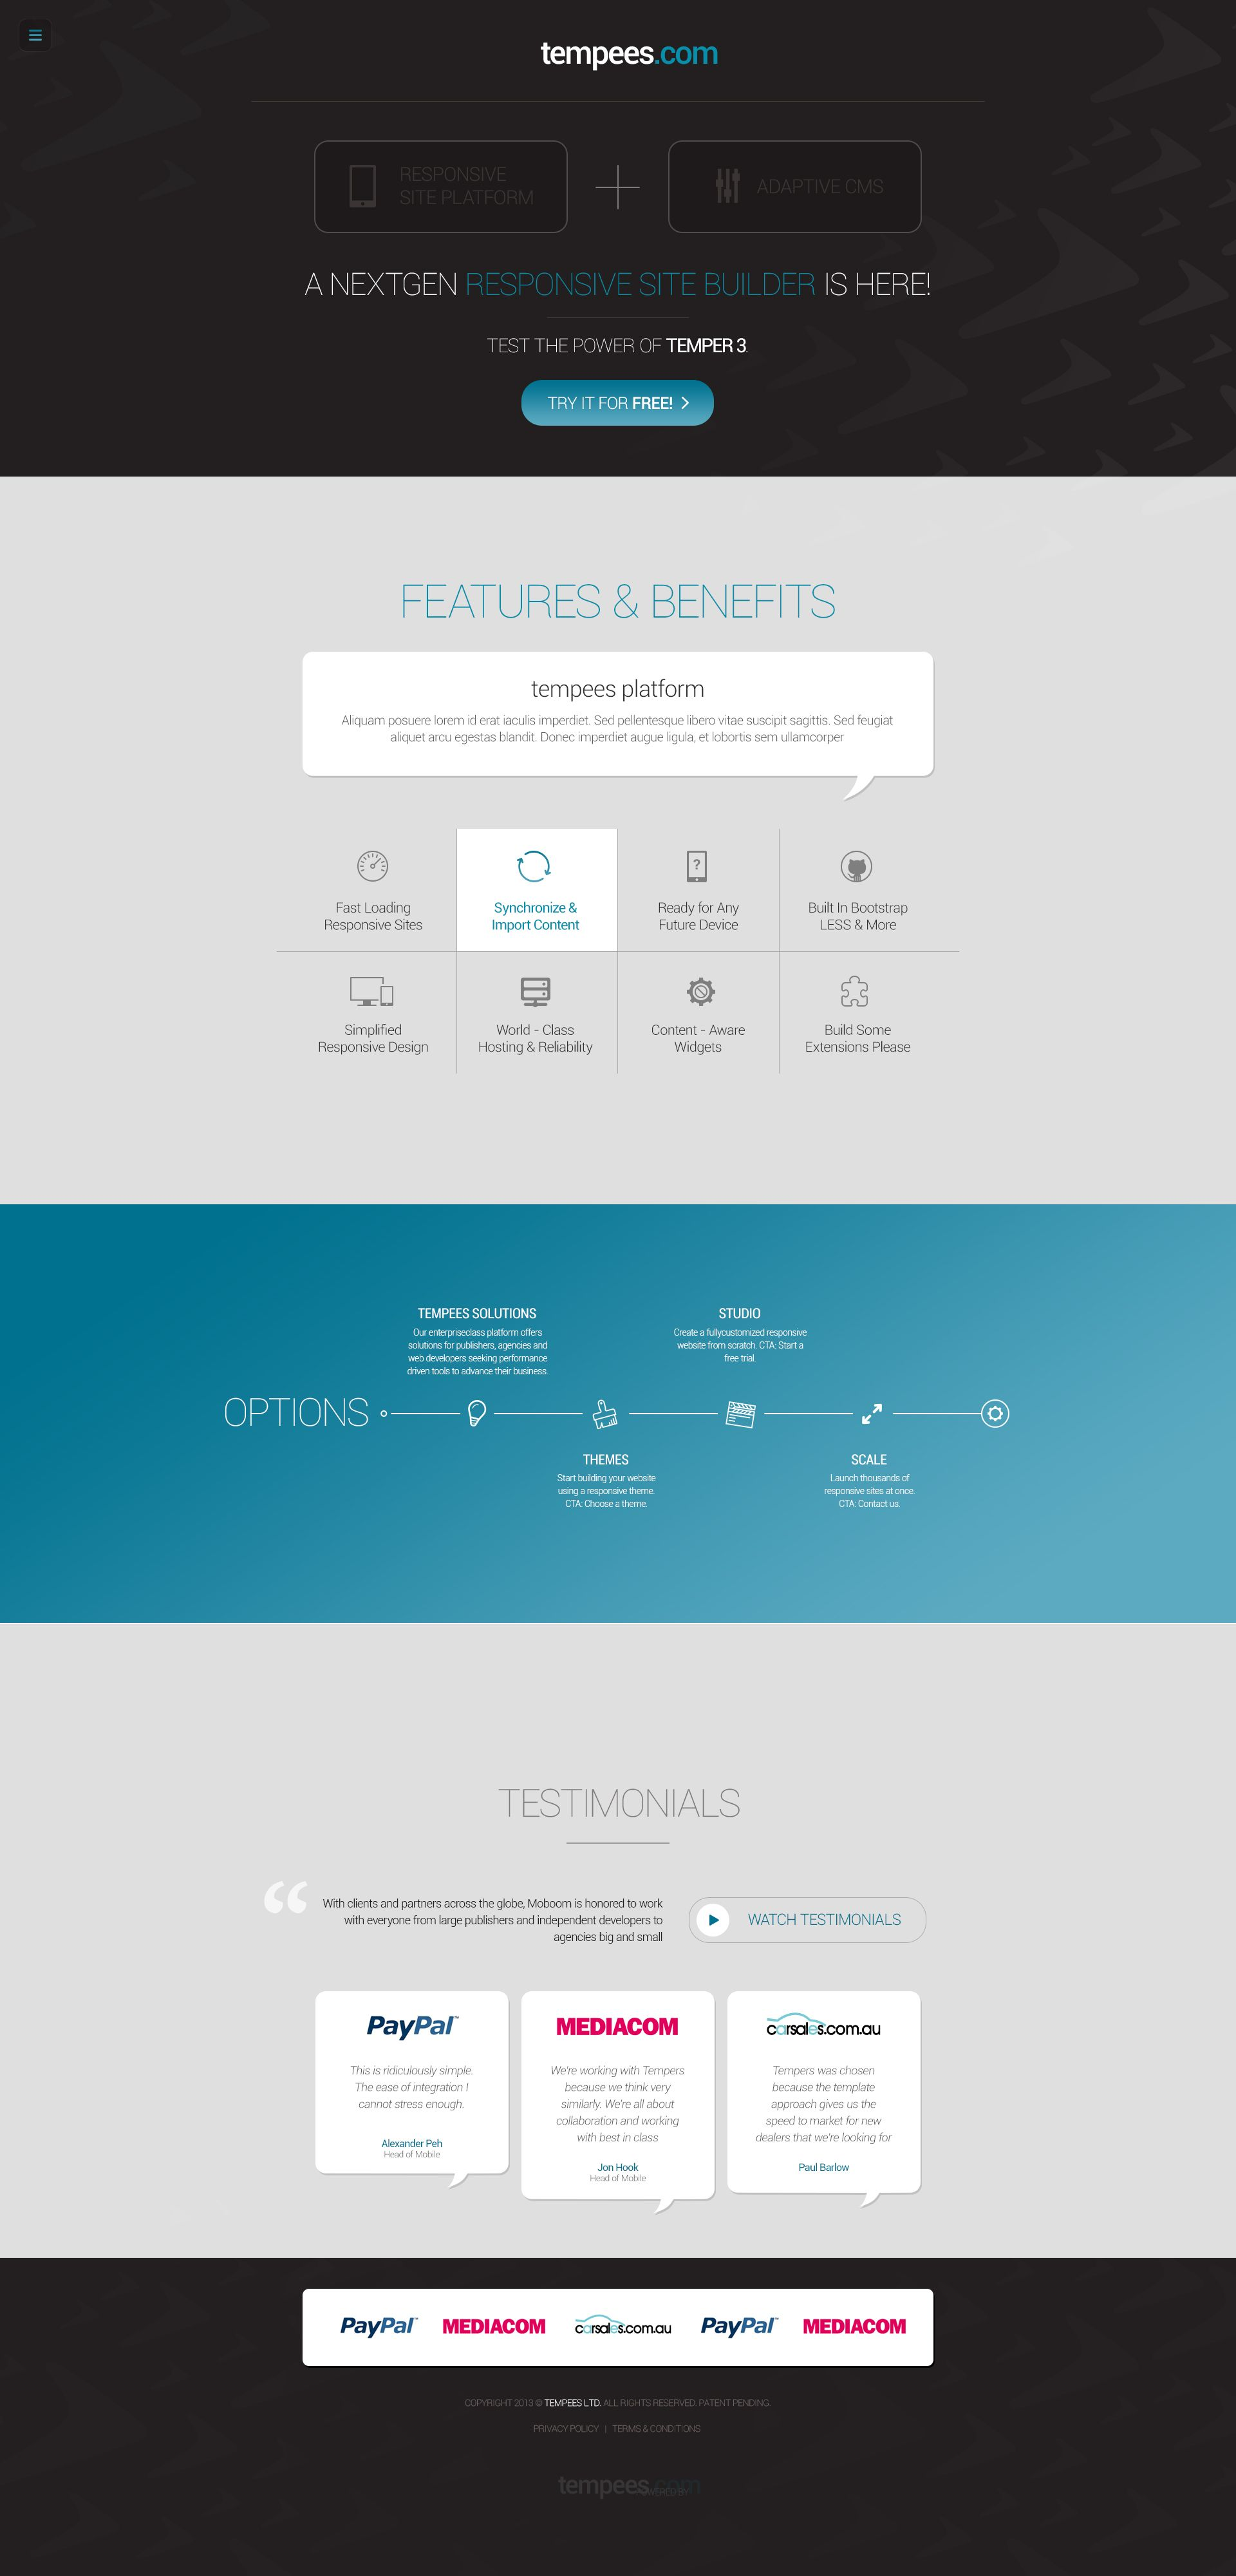 Cool flat one page website PSD template in layers for free download